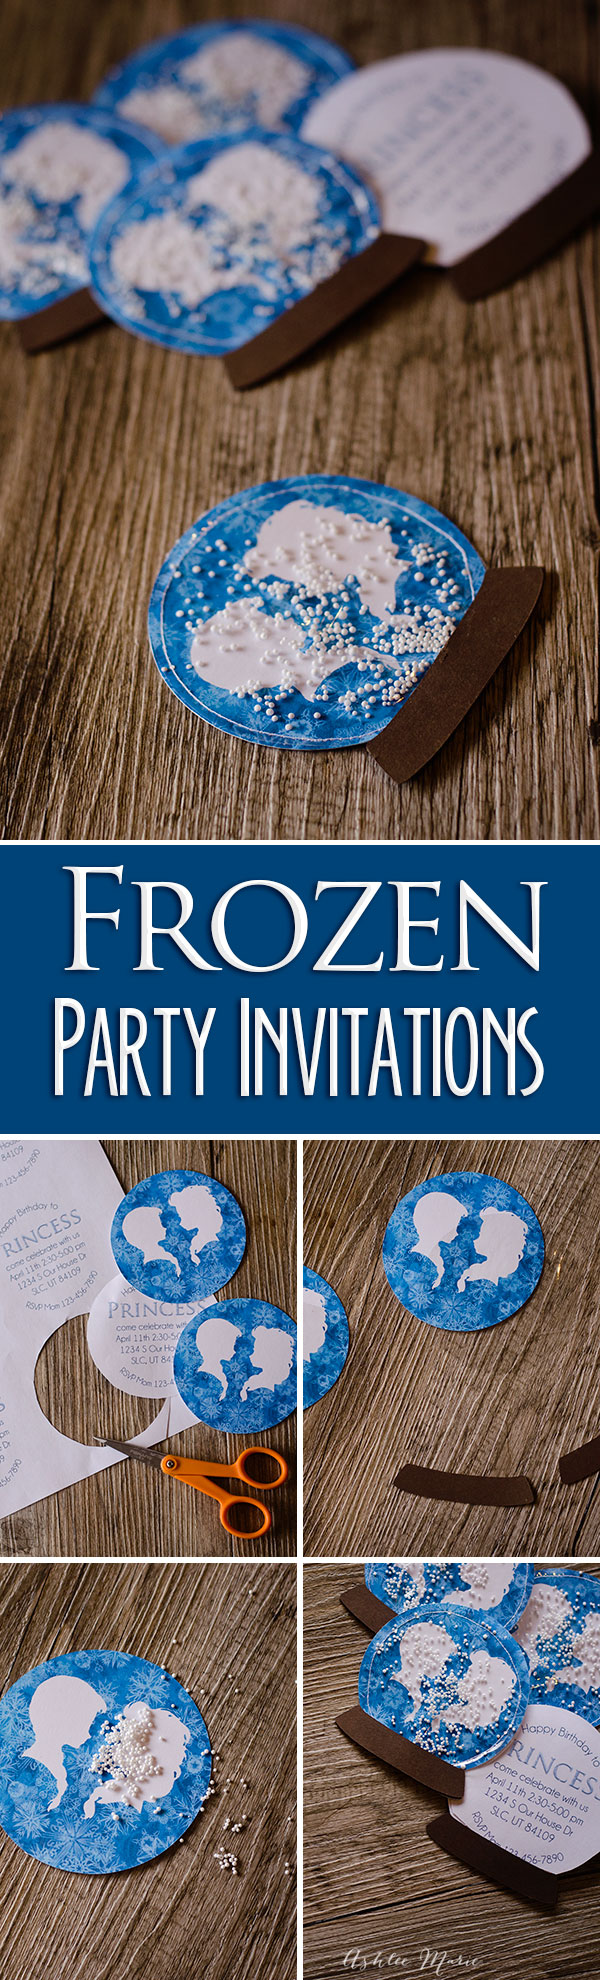 These Frozen birthday party invitations are made to look just like snow globes, free printables